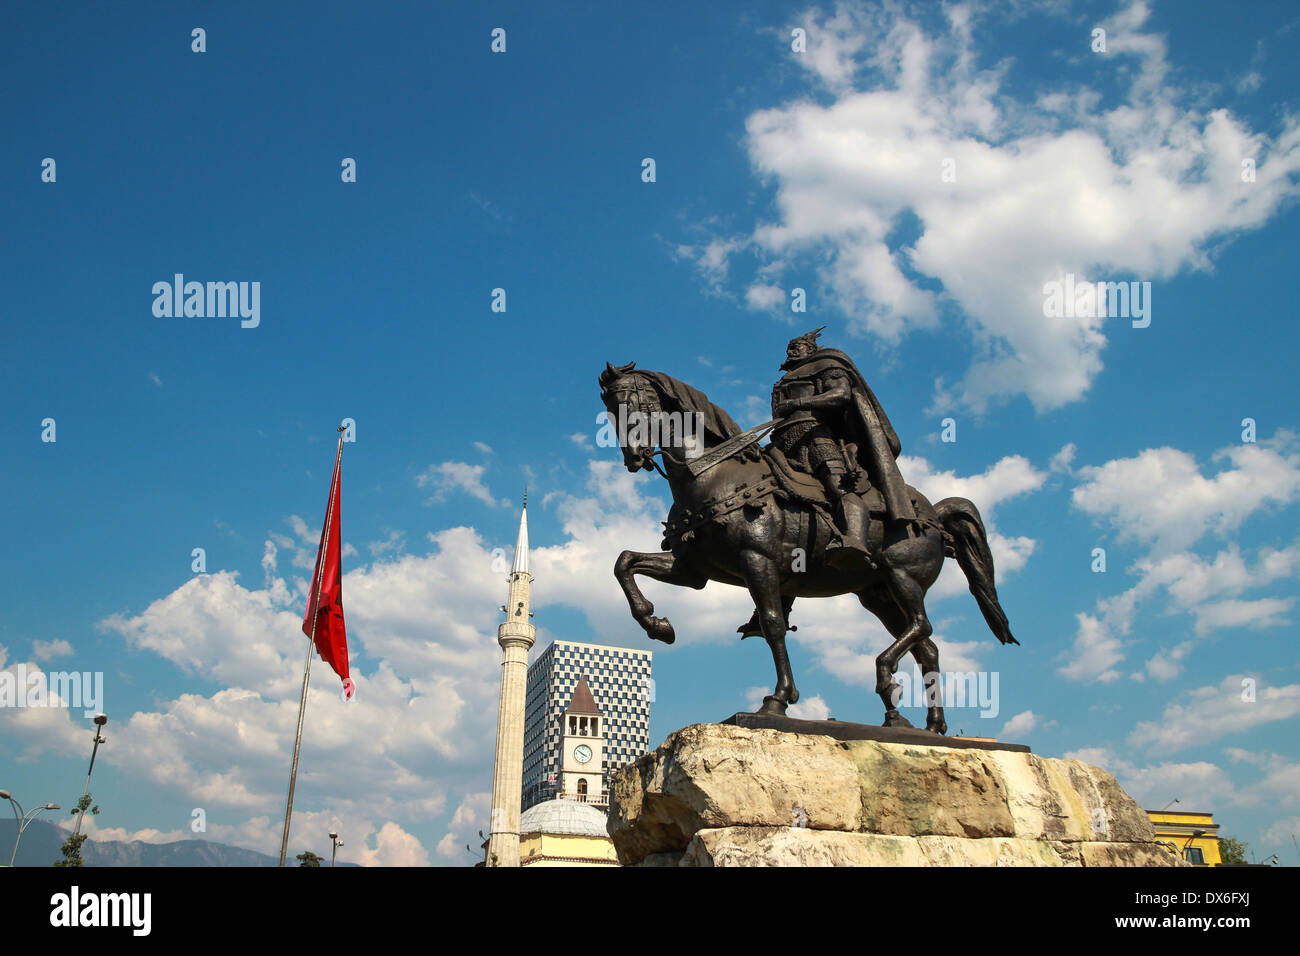 Statue Albanian national hero George Kastrioti Skanderbeg on his horse, in the main square of Tirana, the capital of Albania - Stock Image